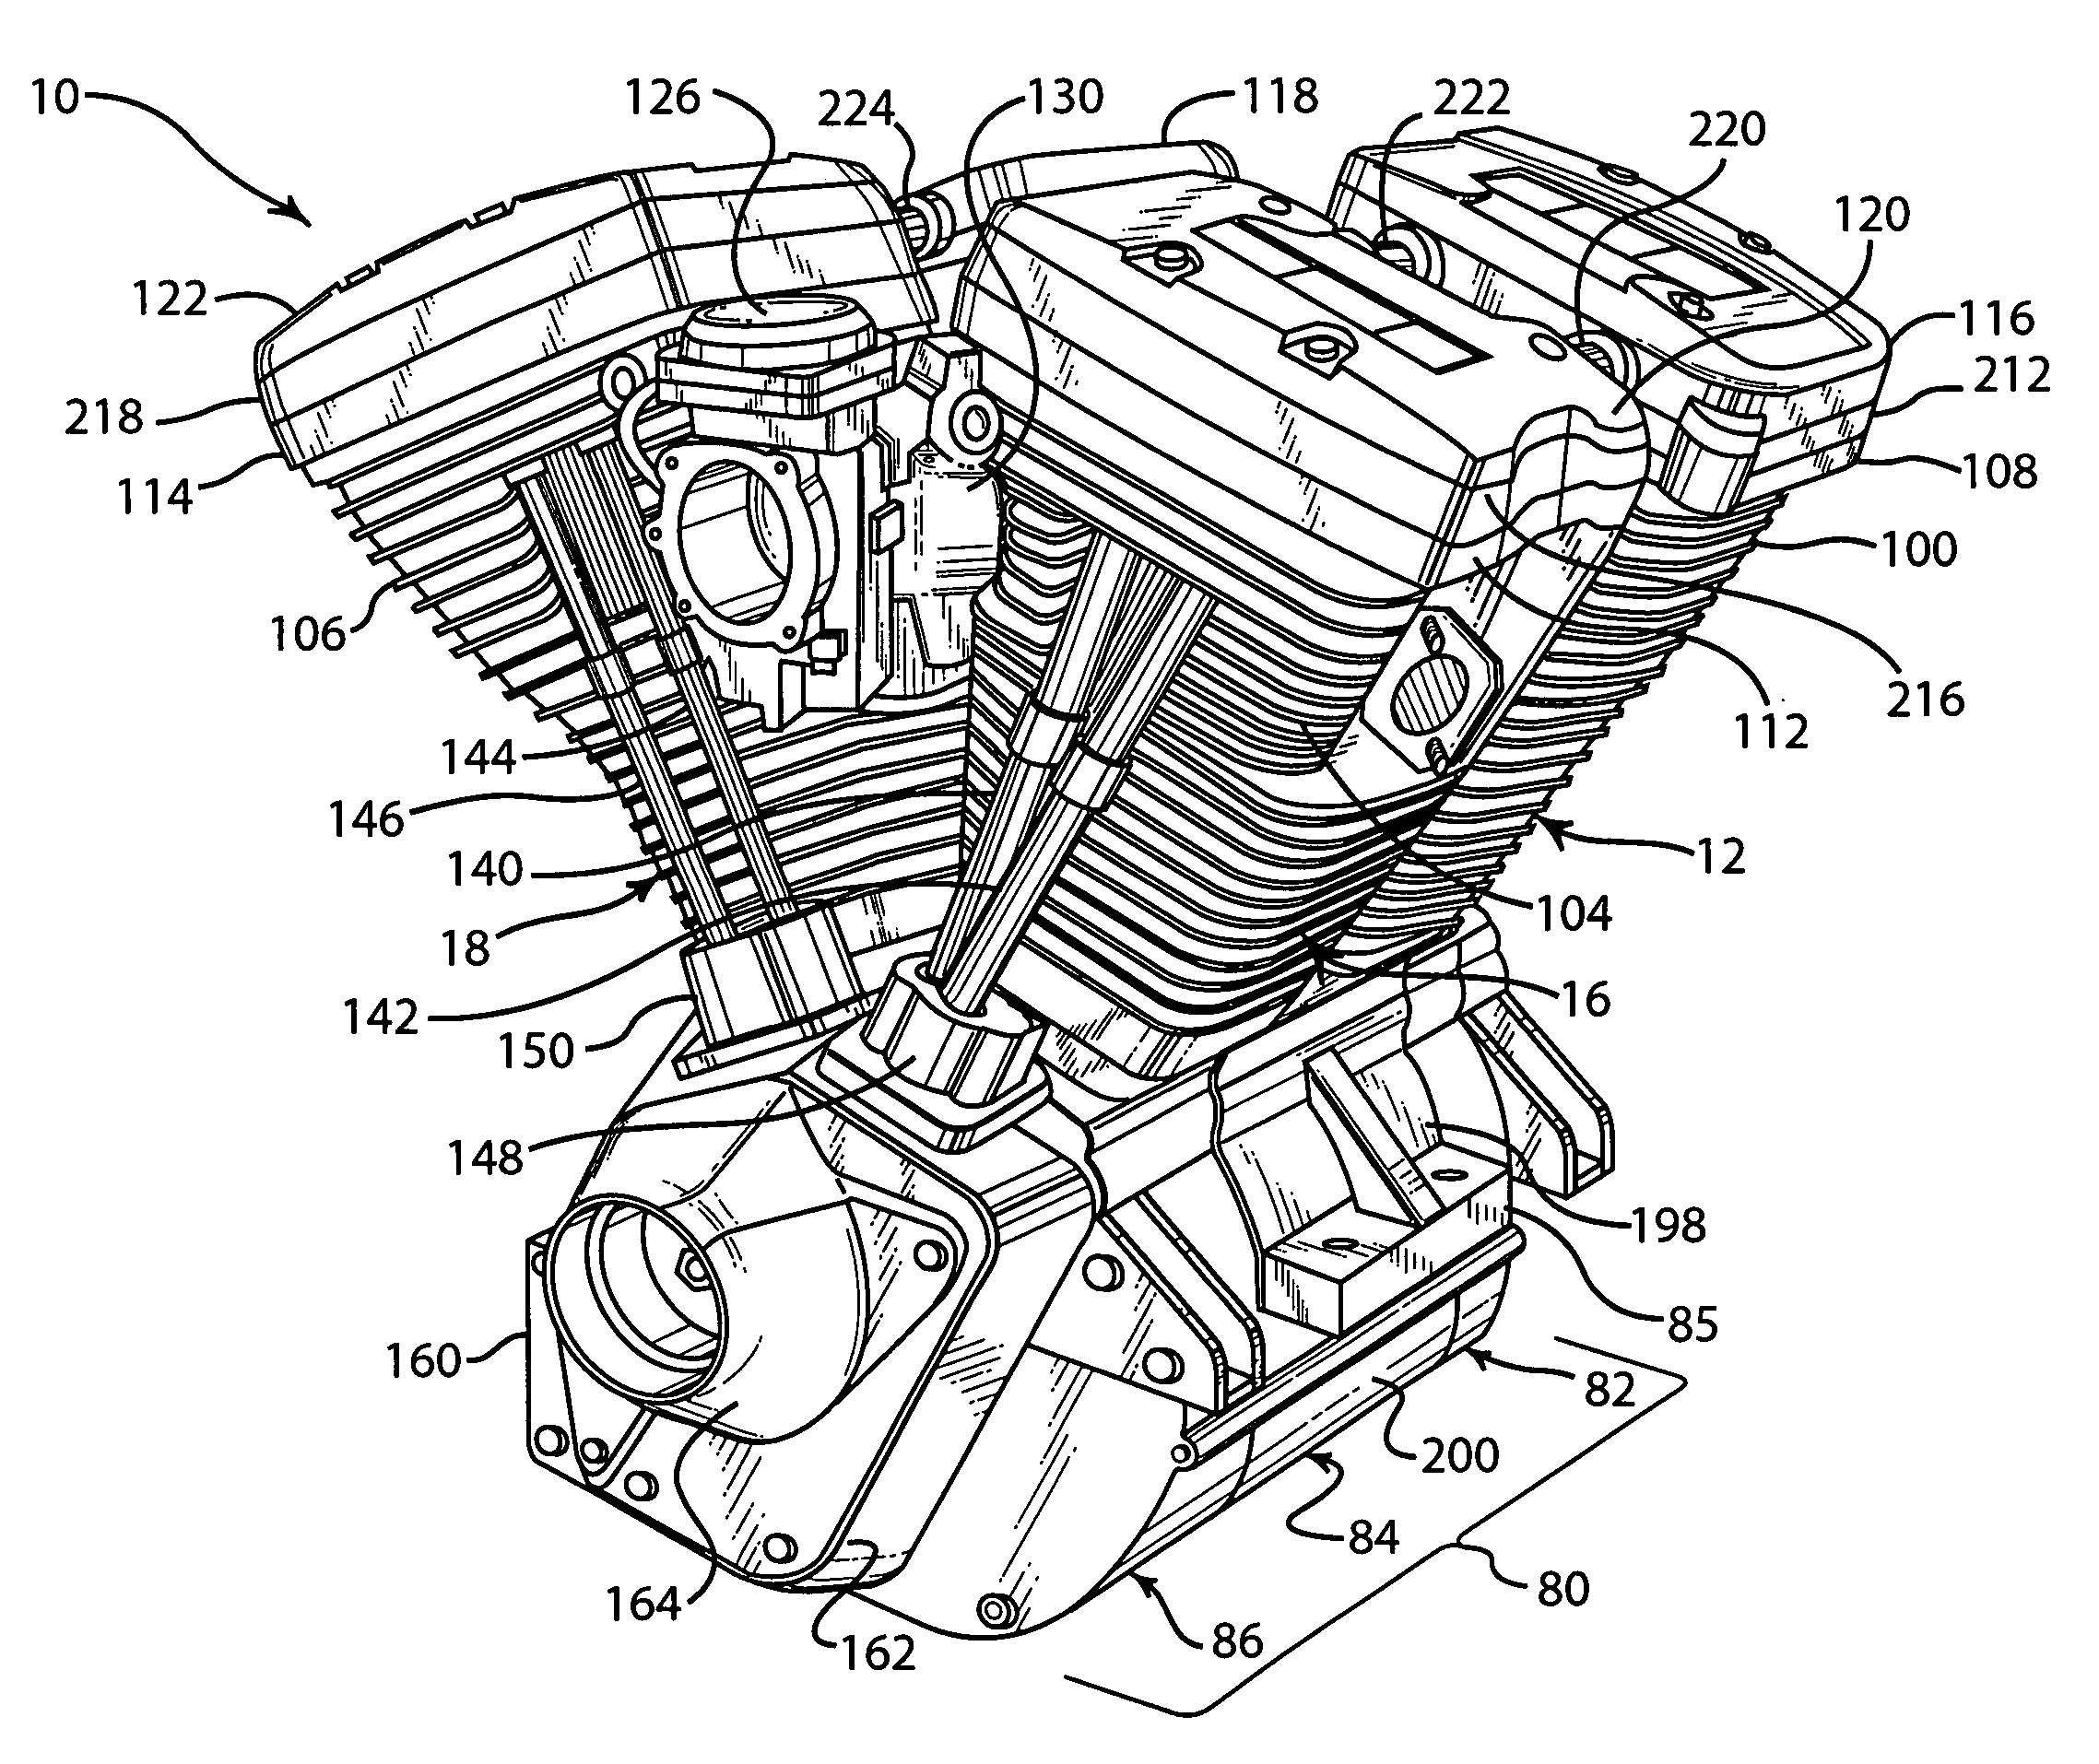 Evo 8 Engine Wiring Diagram